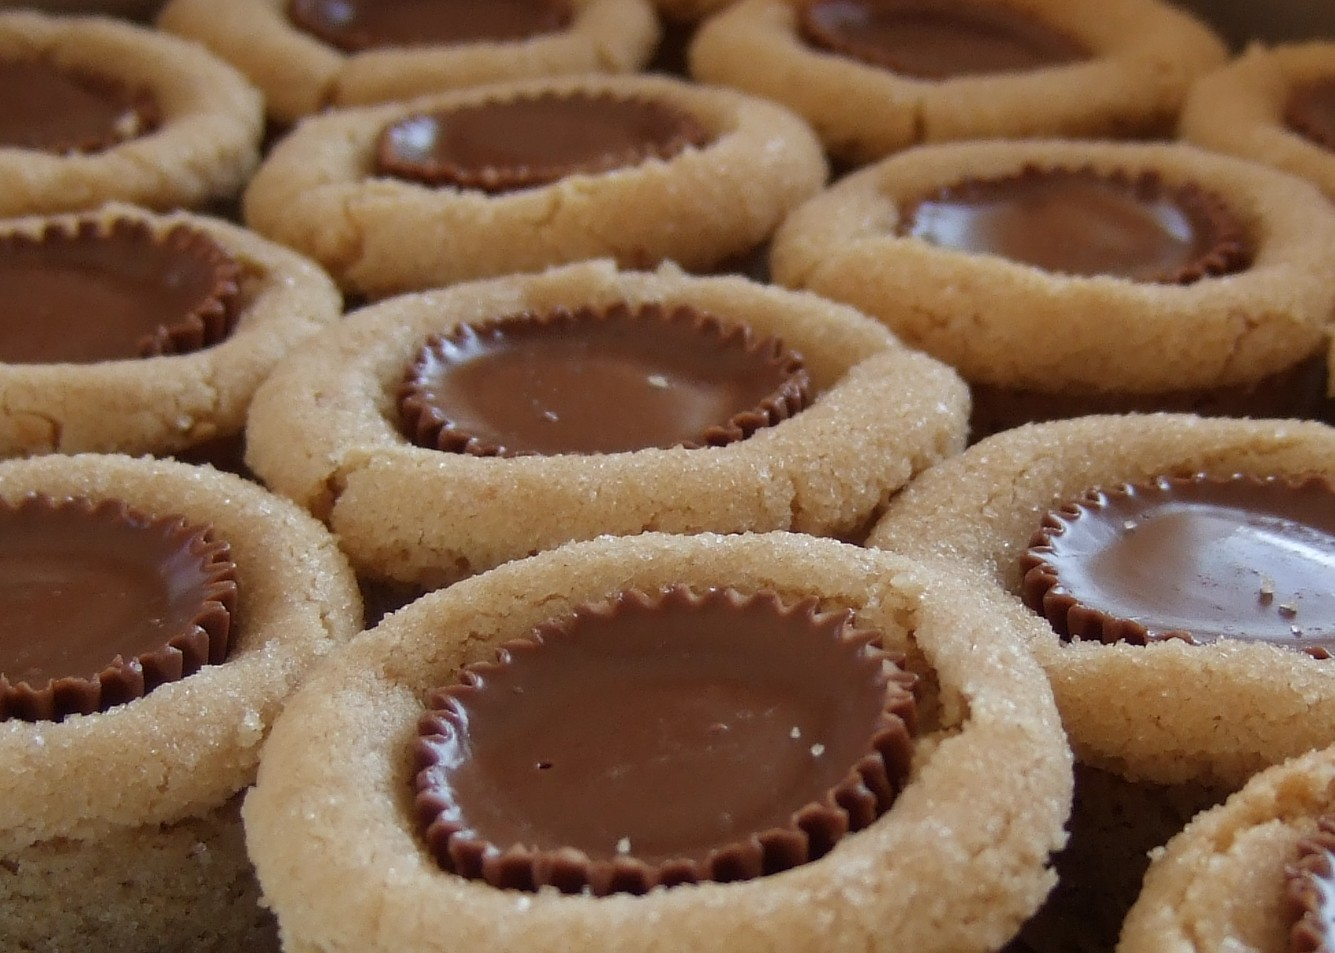 File:Peanut butter blossoms closeup.jpg - Wikimedia Commons